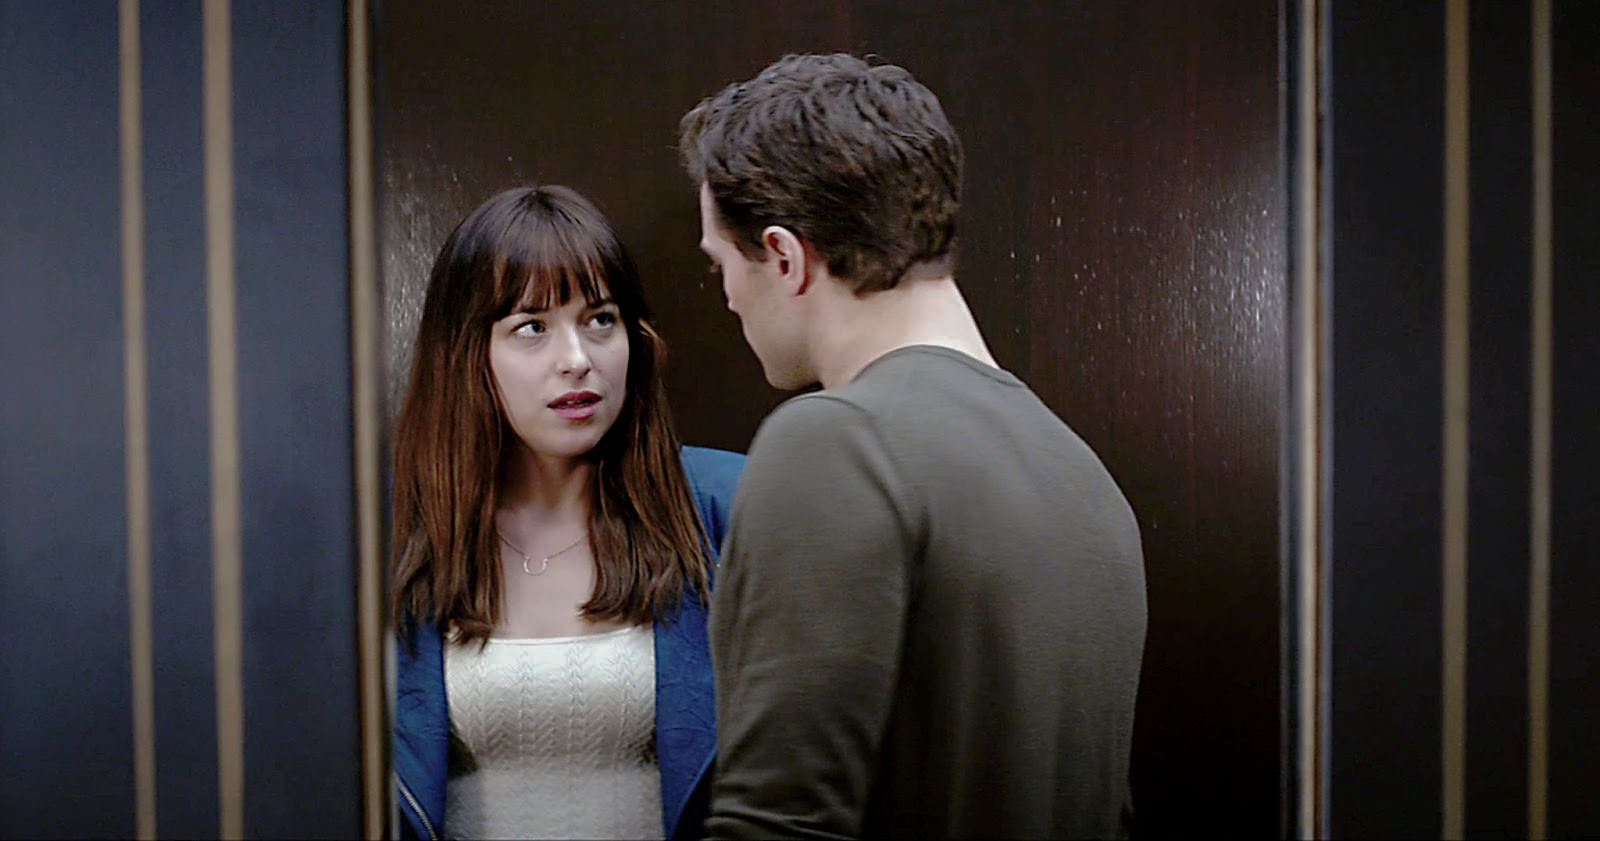 """Researchers Find """"Fifty Shades of Grey"""" Is Characterized By Intimate Partner Violence"""